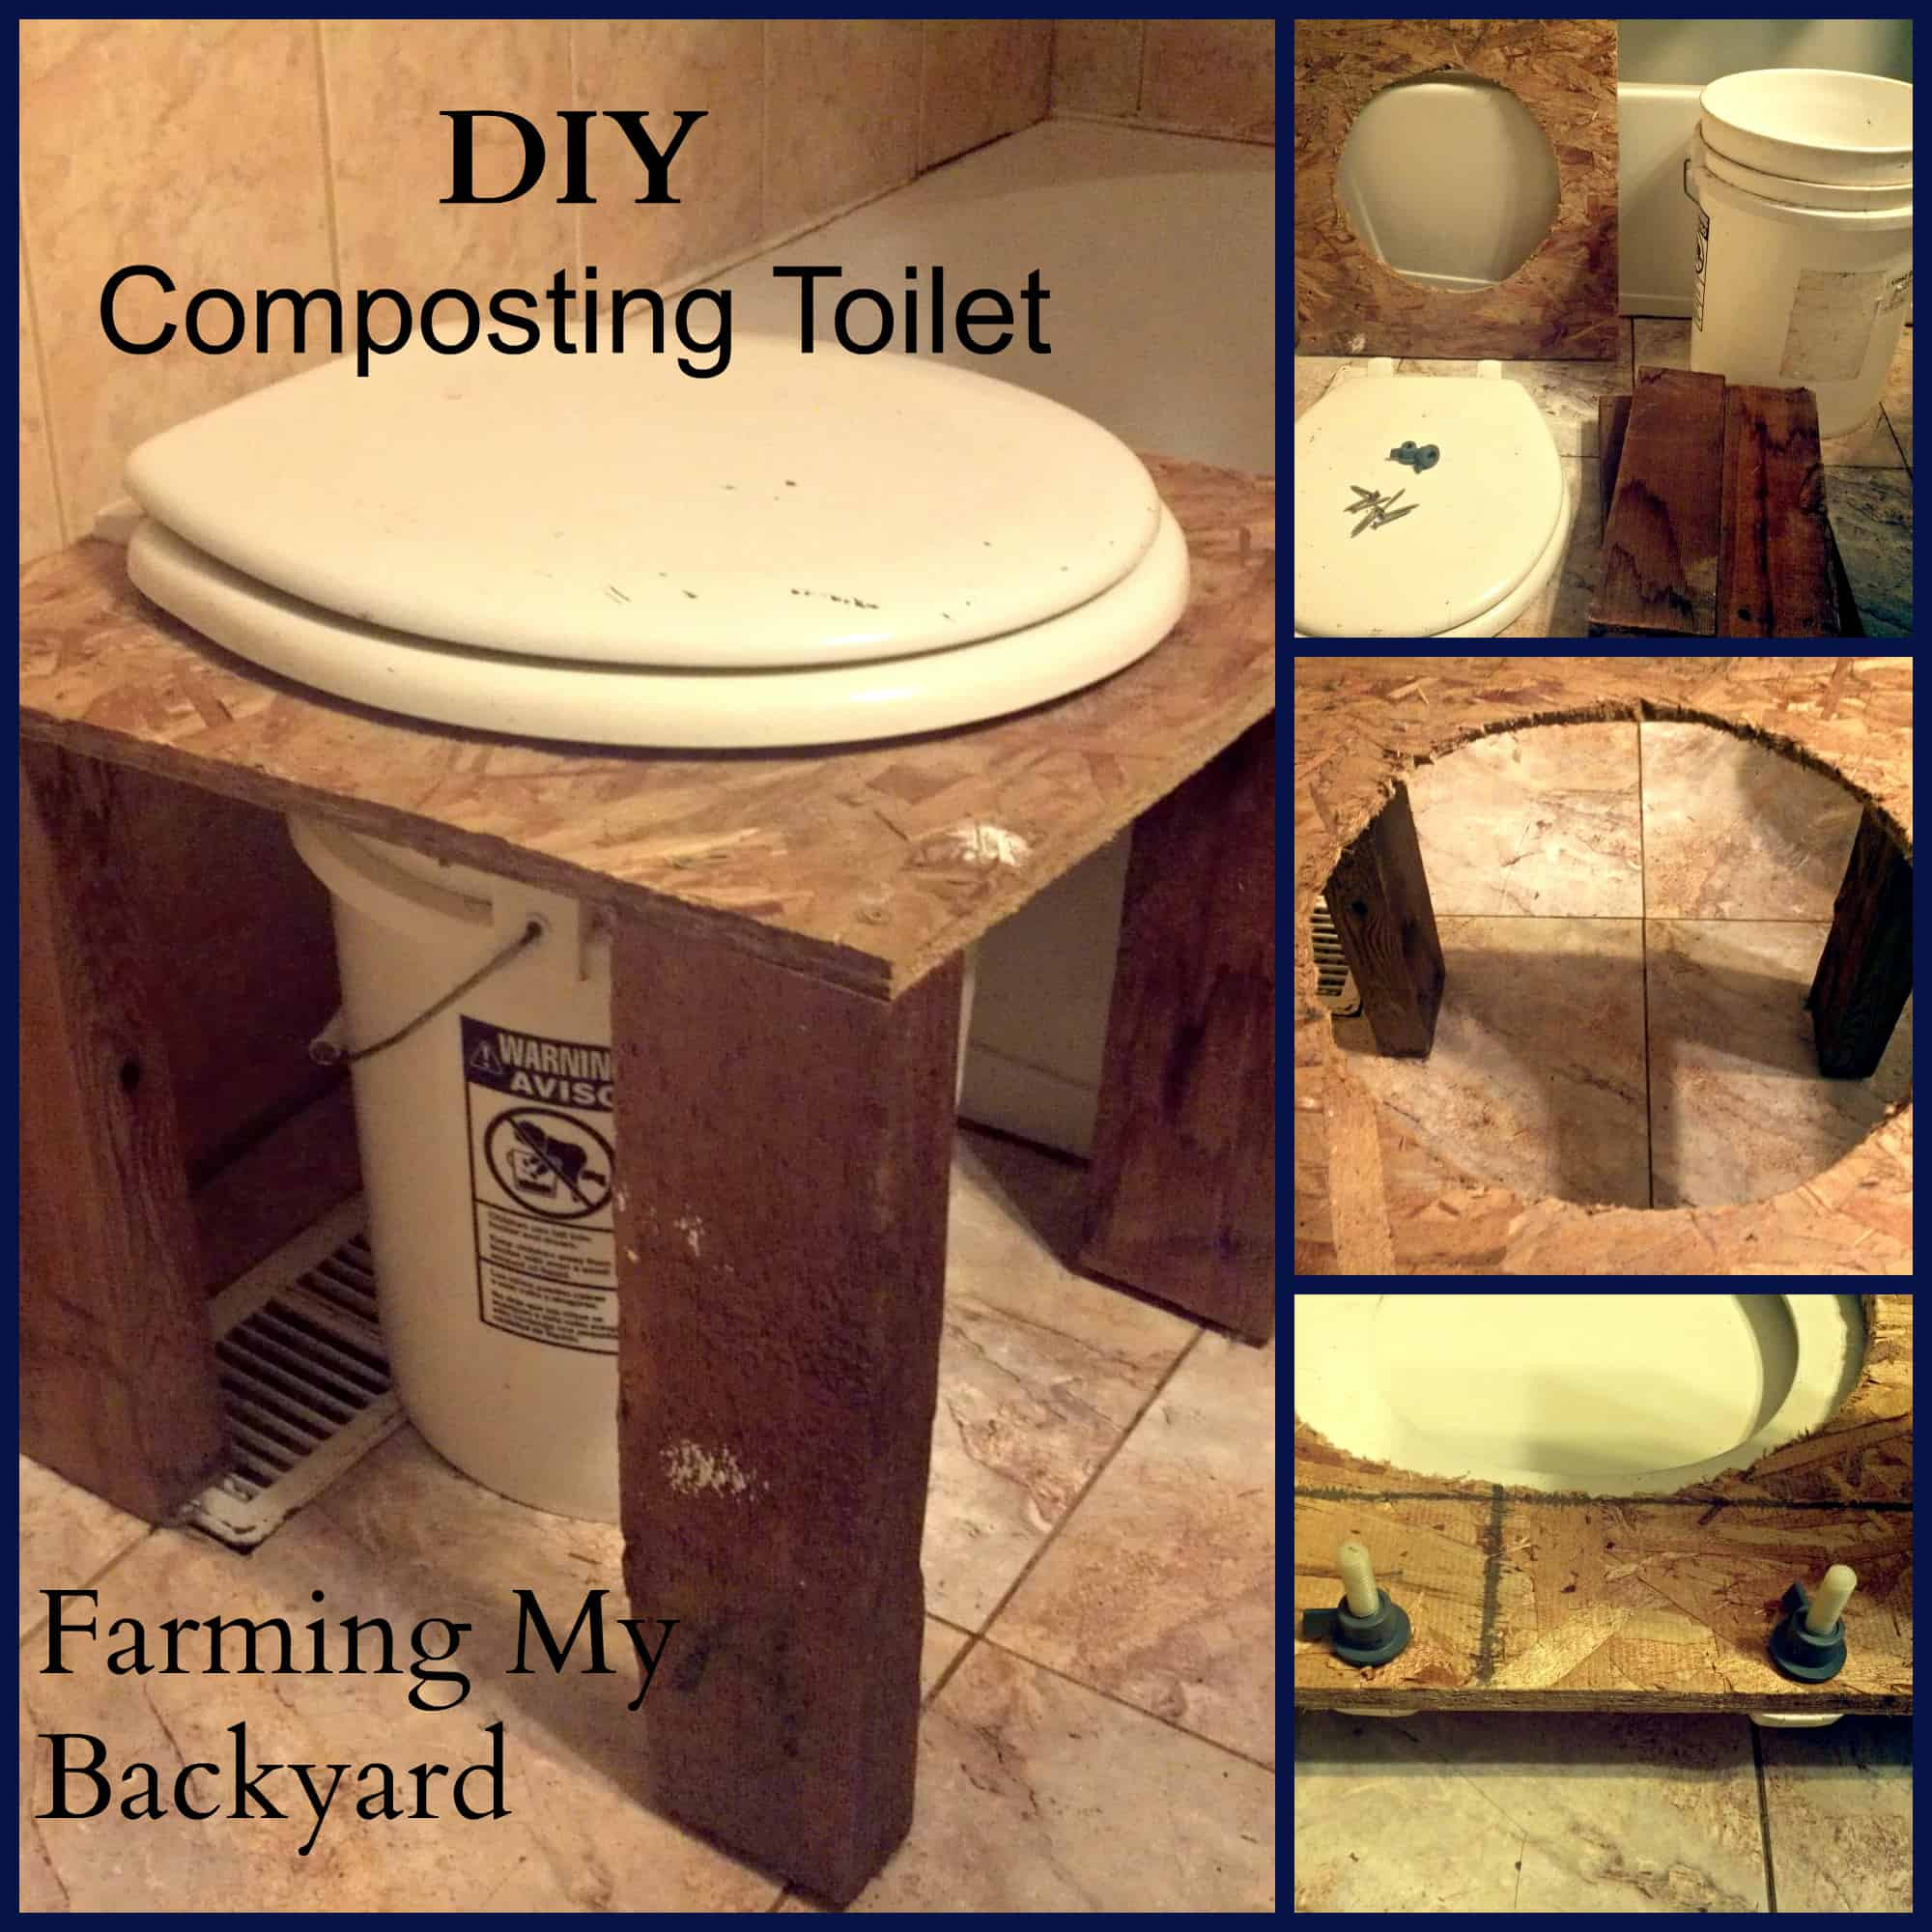 Best ideas about DIY Composting Toilet . Save or Pin DIY posting Toilet Farming My Backyard Now.